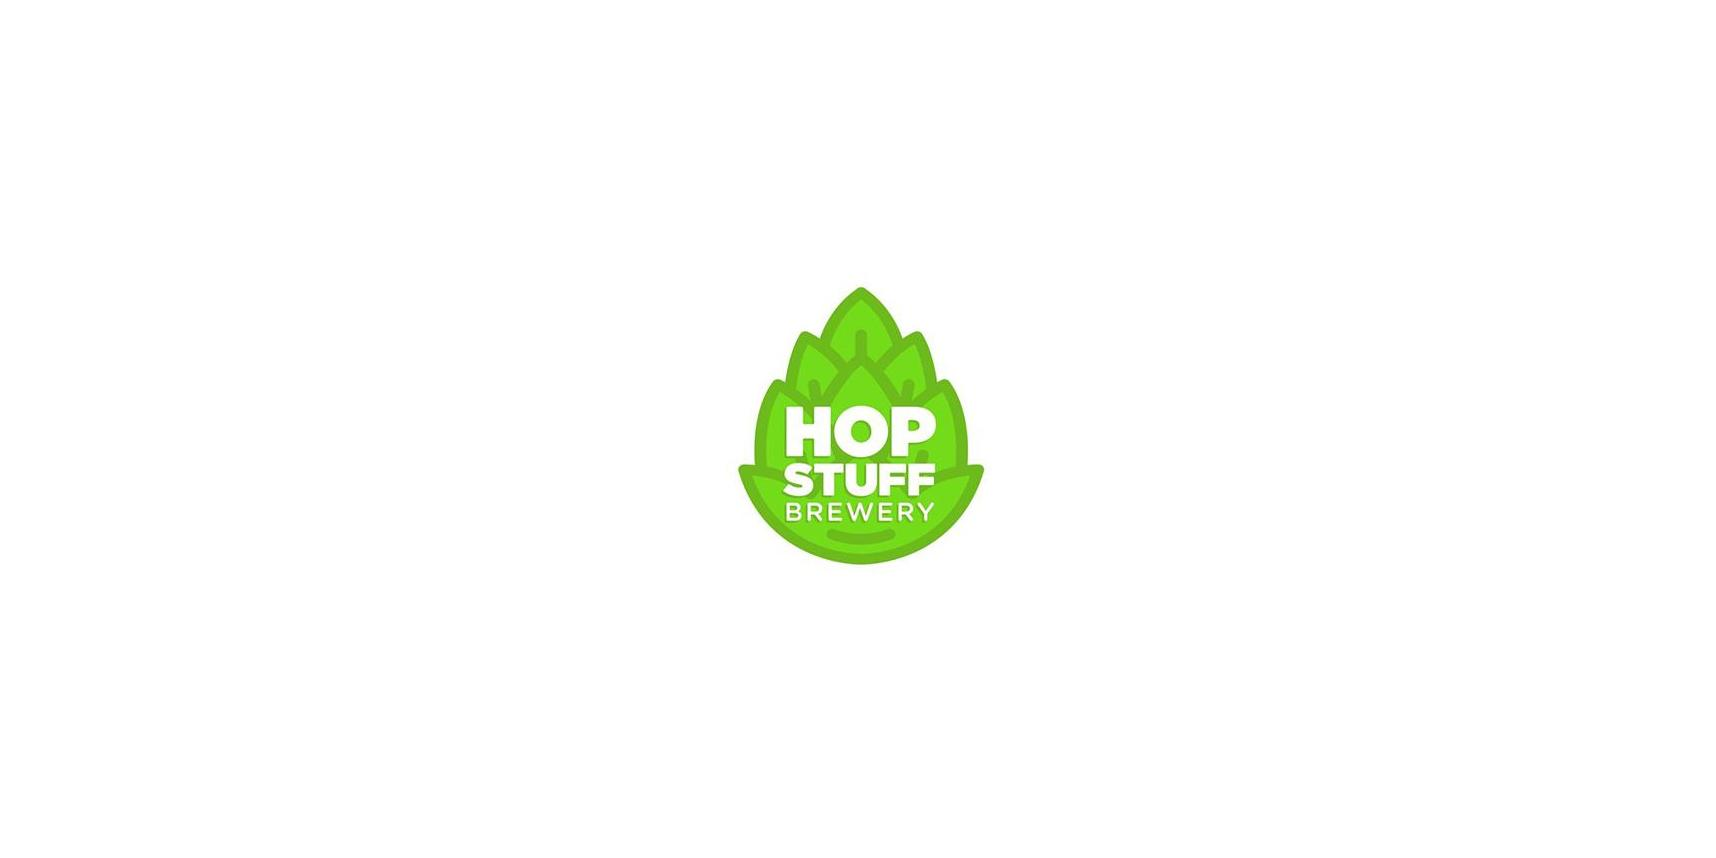 Hop Stuff Brewery Says No To Plastic